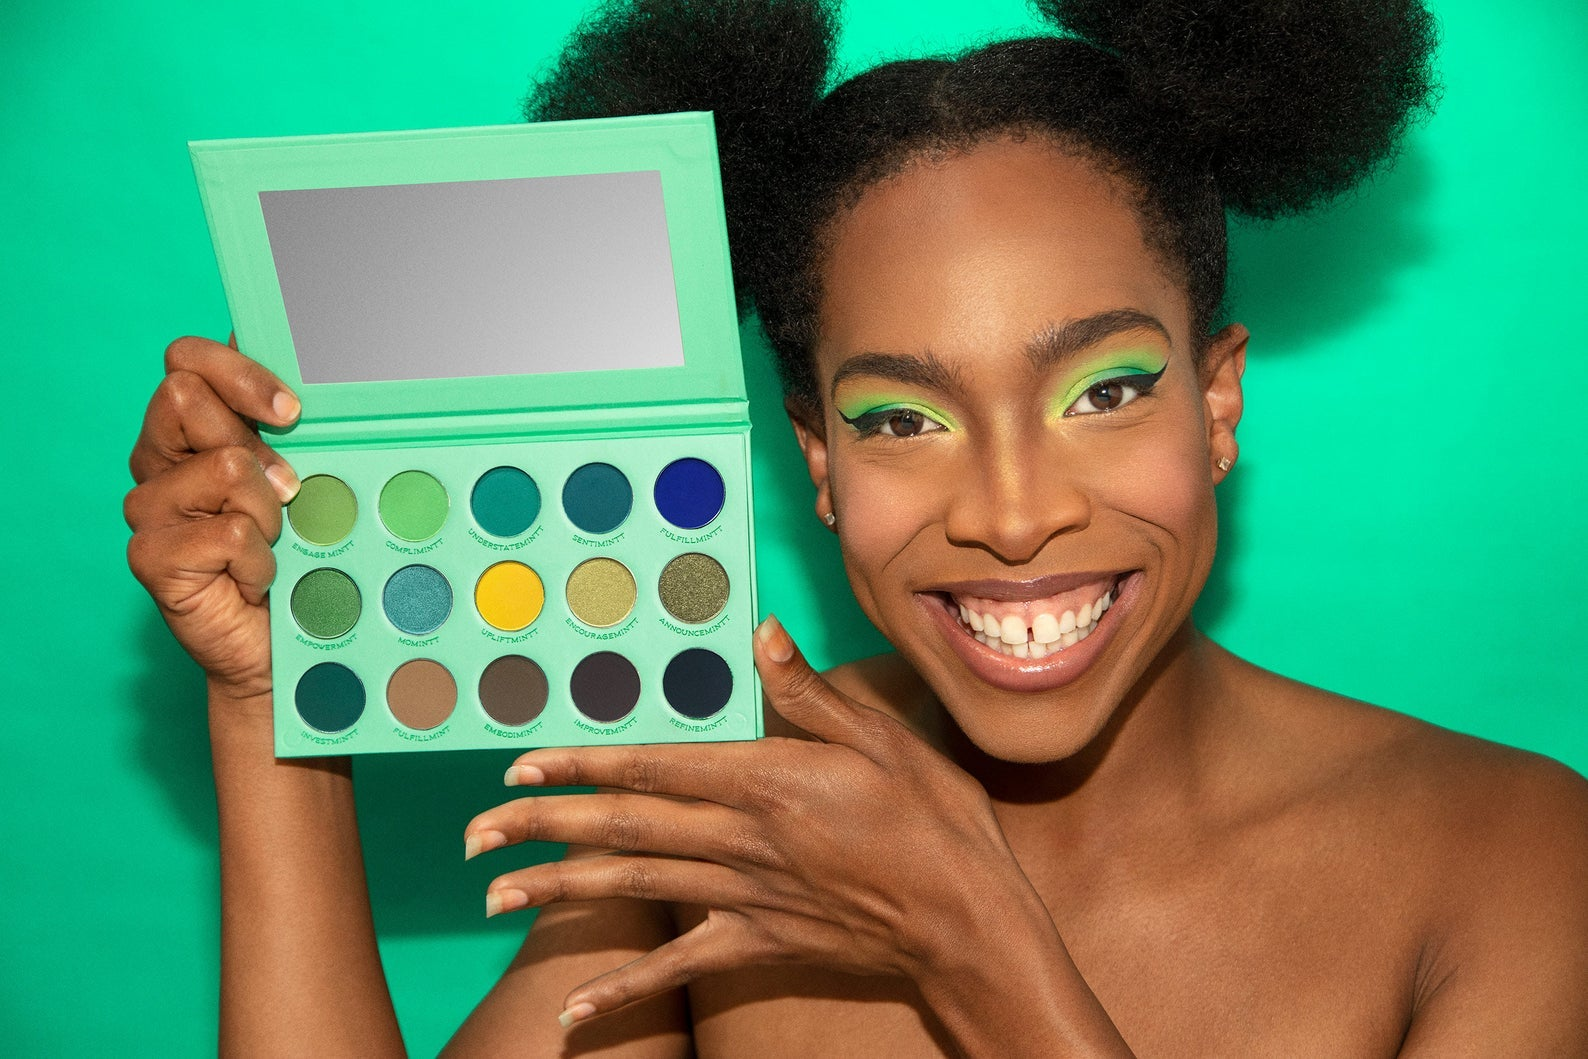 shop owner, junior mintt holding the mint colored eyeshadow palette